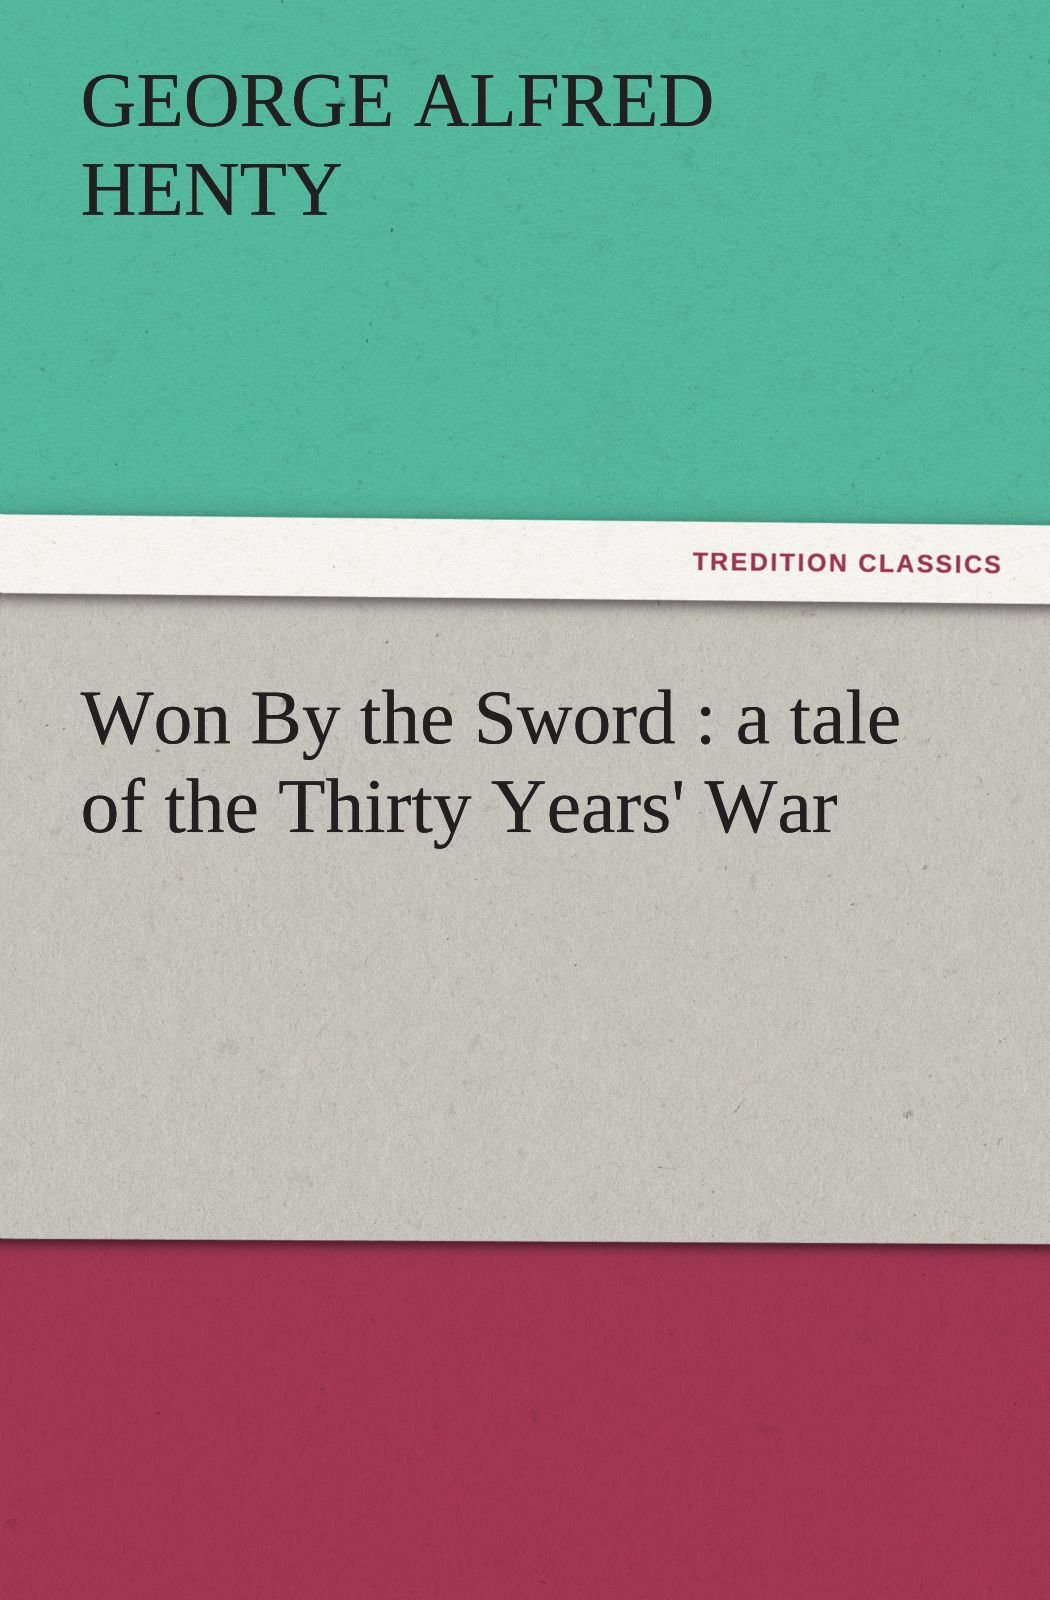 Download Won By the Sword : a tale of the Thirty Years' War (TREDITION CLASSICS) PDF